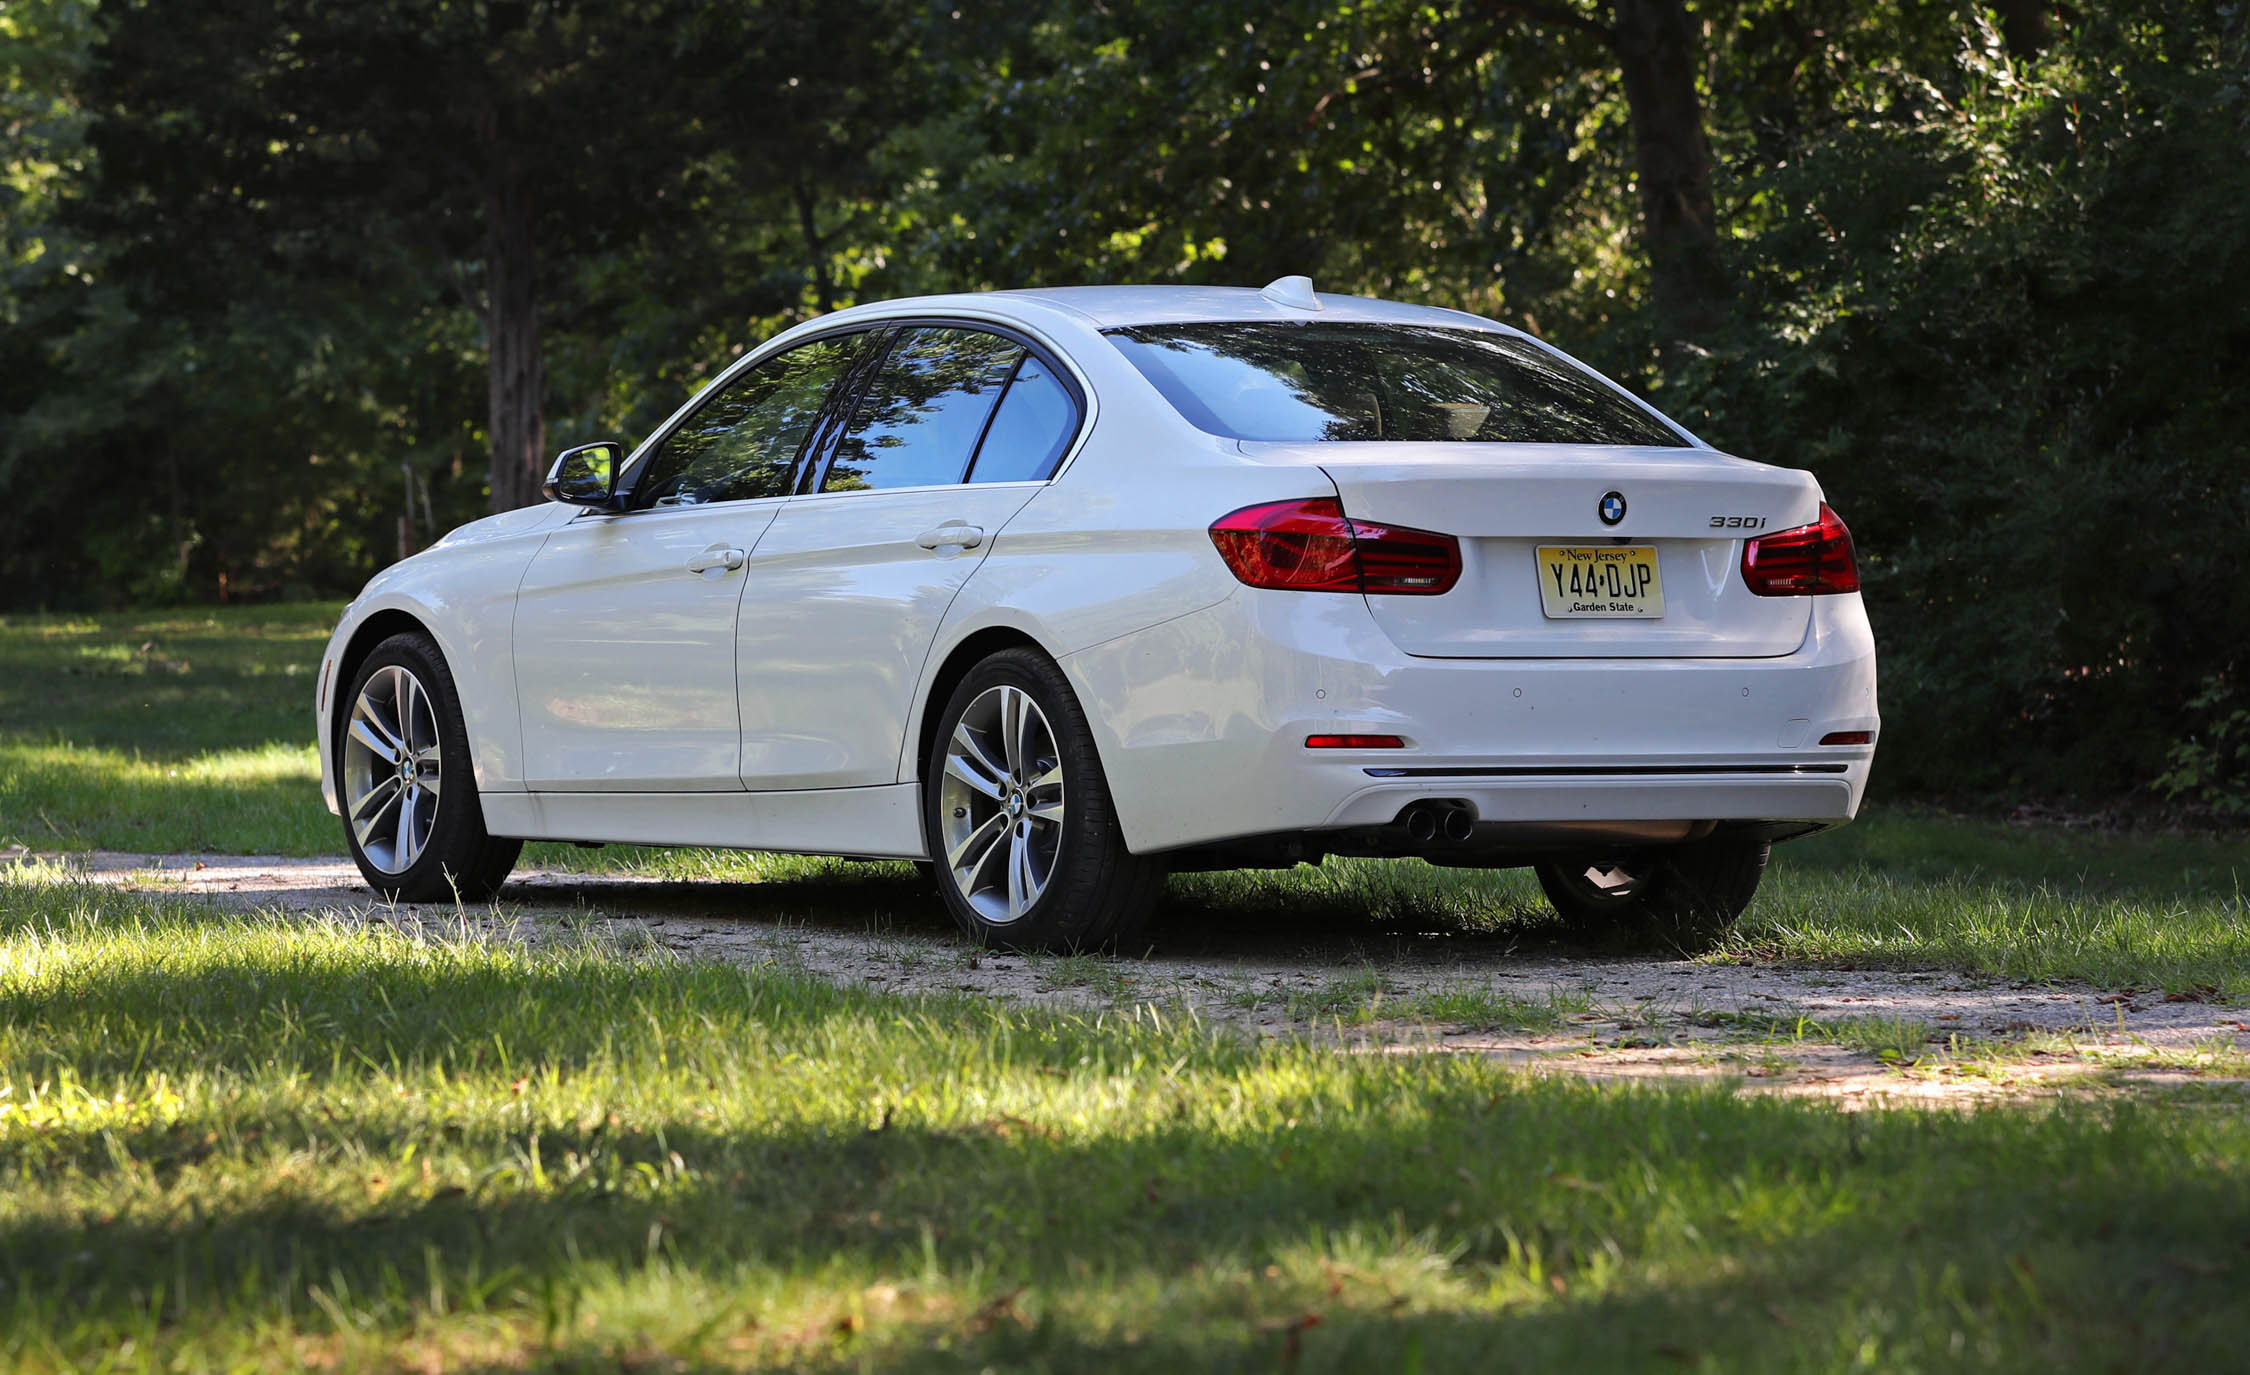 2017 BMW 330i Exterior Rear And Side (View 6 of 59)